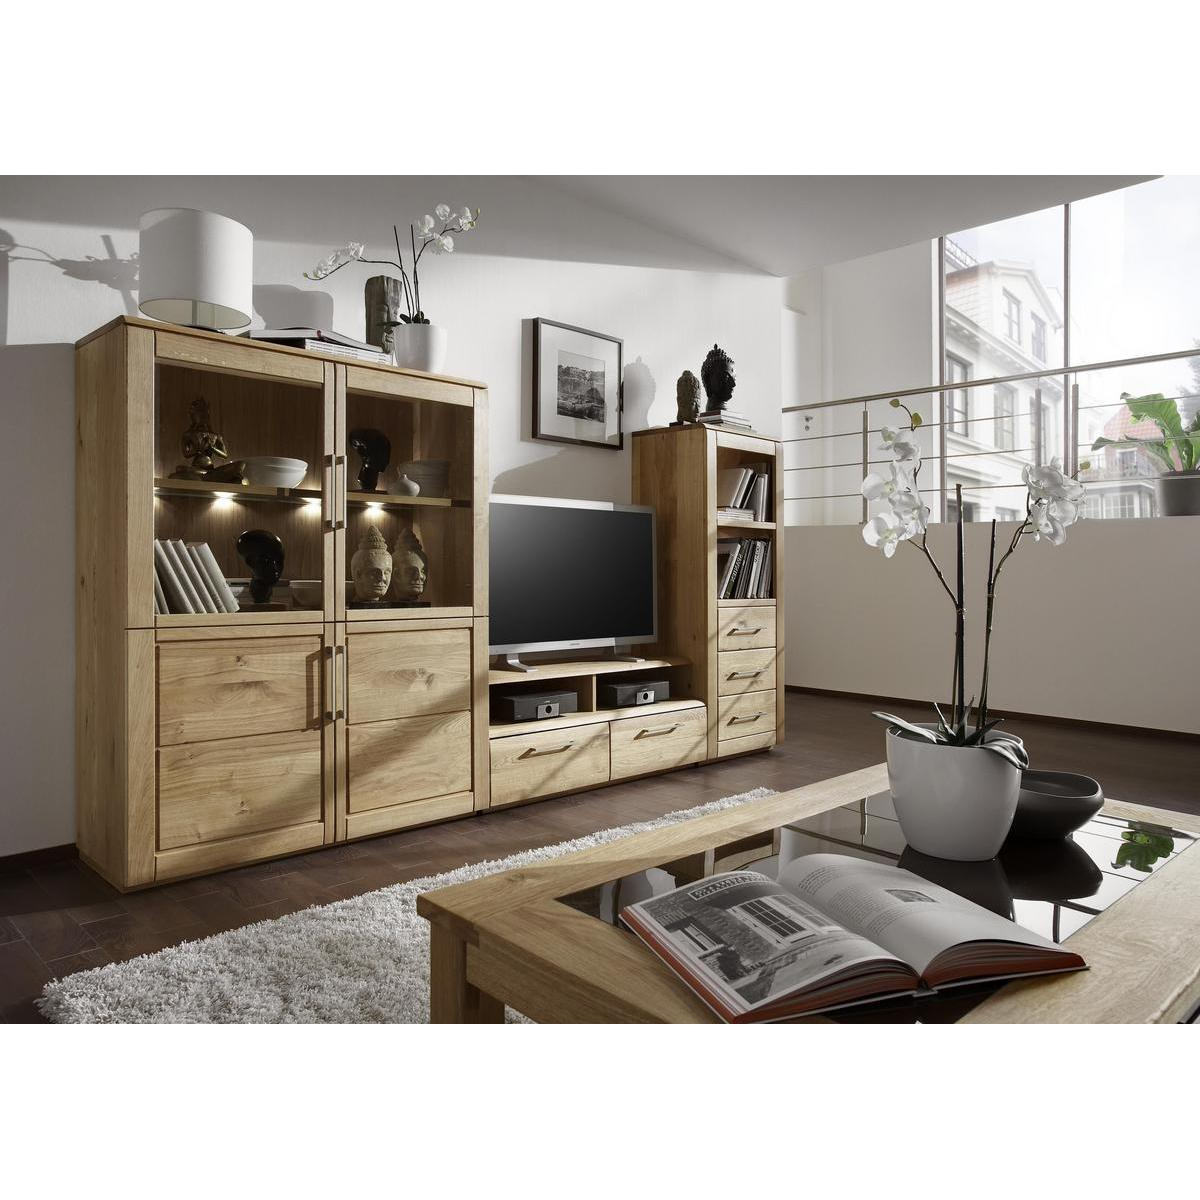 wohnzimmerm bel komplett m belideen. Black Bedroom Furniture Sets. Home Design Ideas